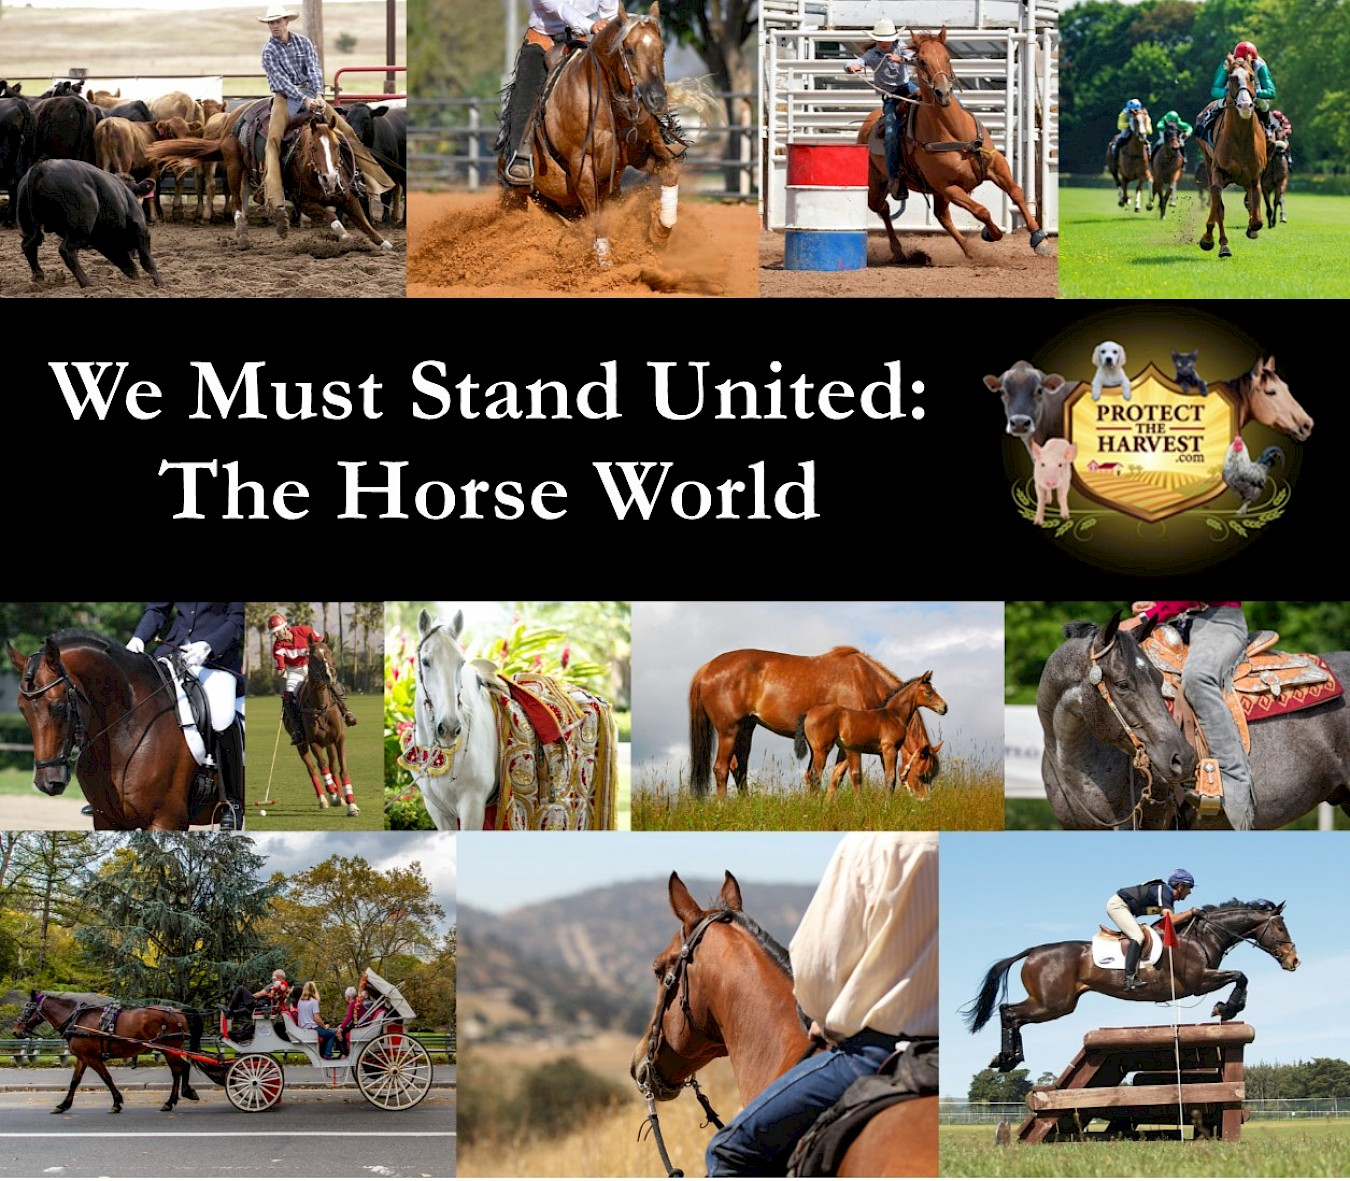 We Must Stand United - The Horse World